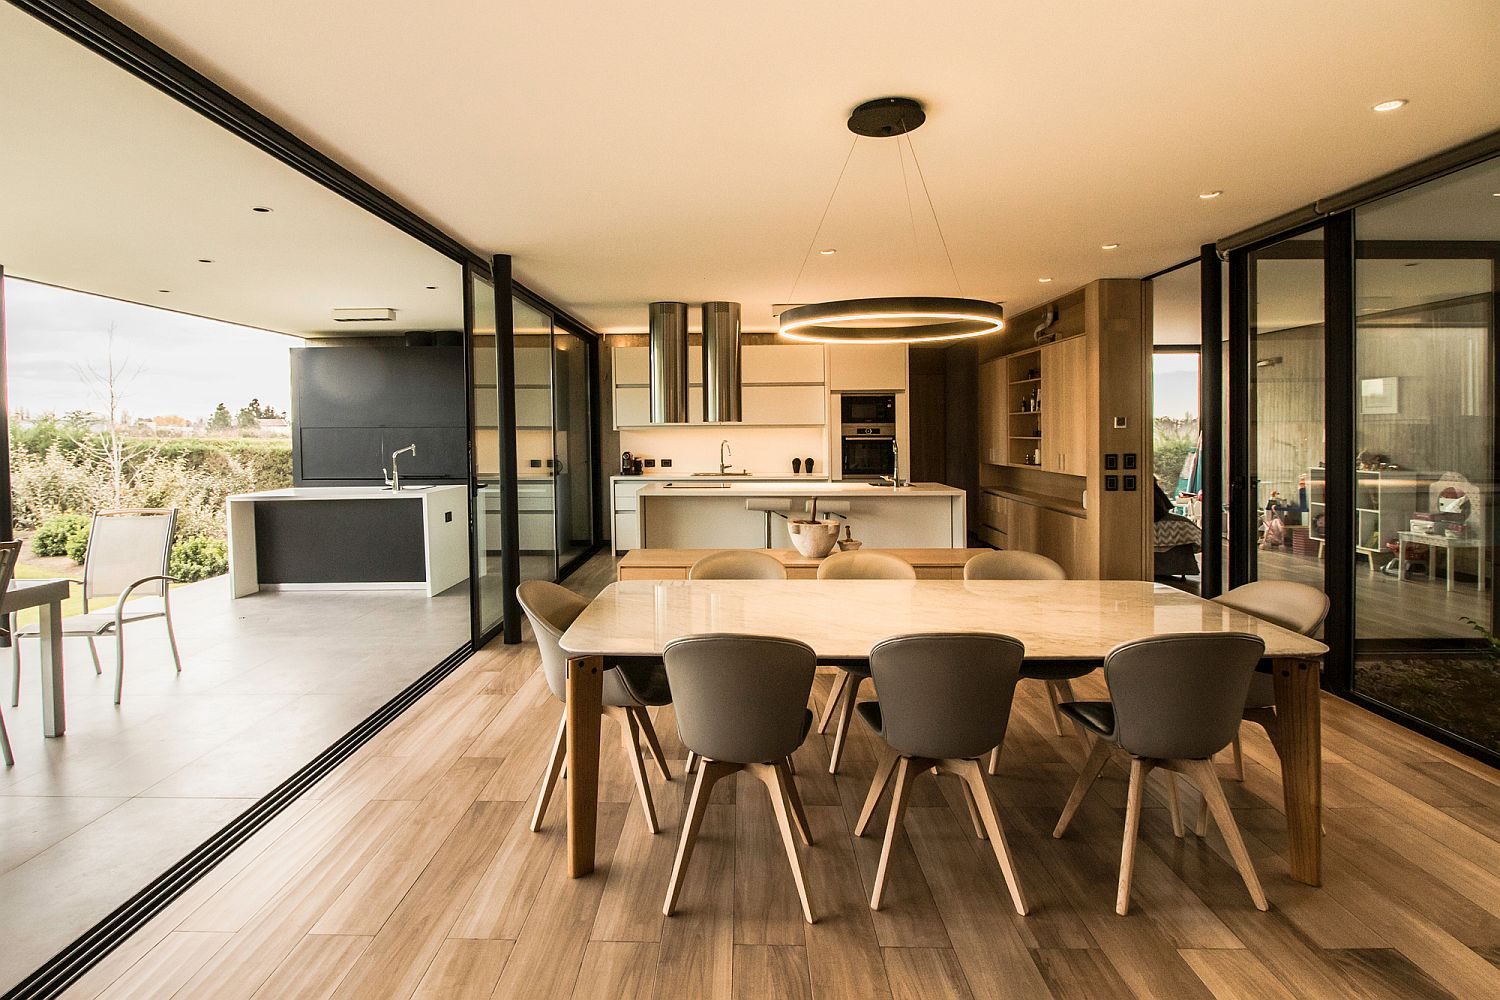 Open plan living area of the housewith outdoor kitchen and dining next to it